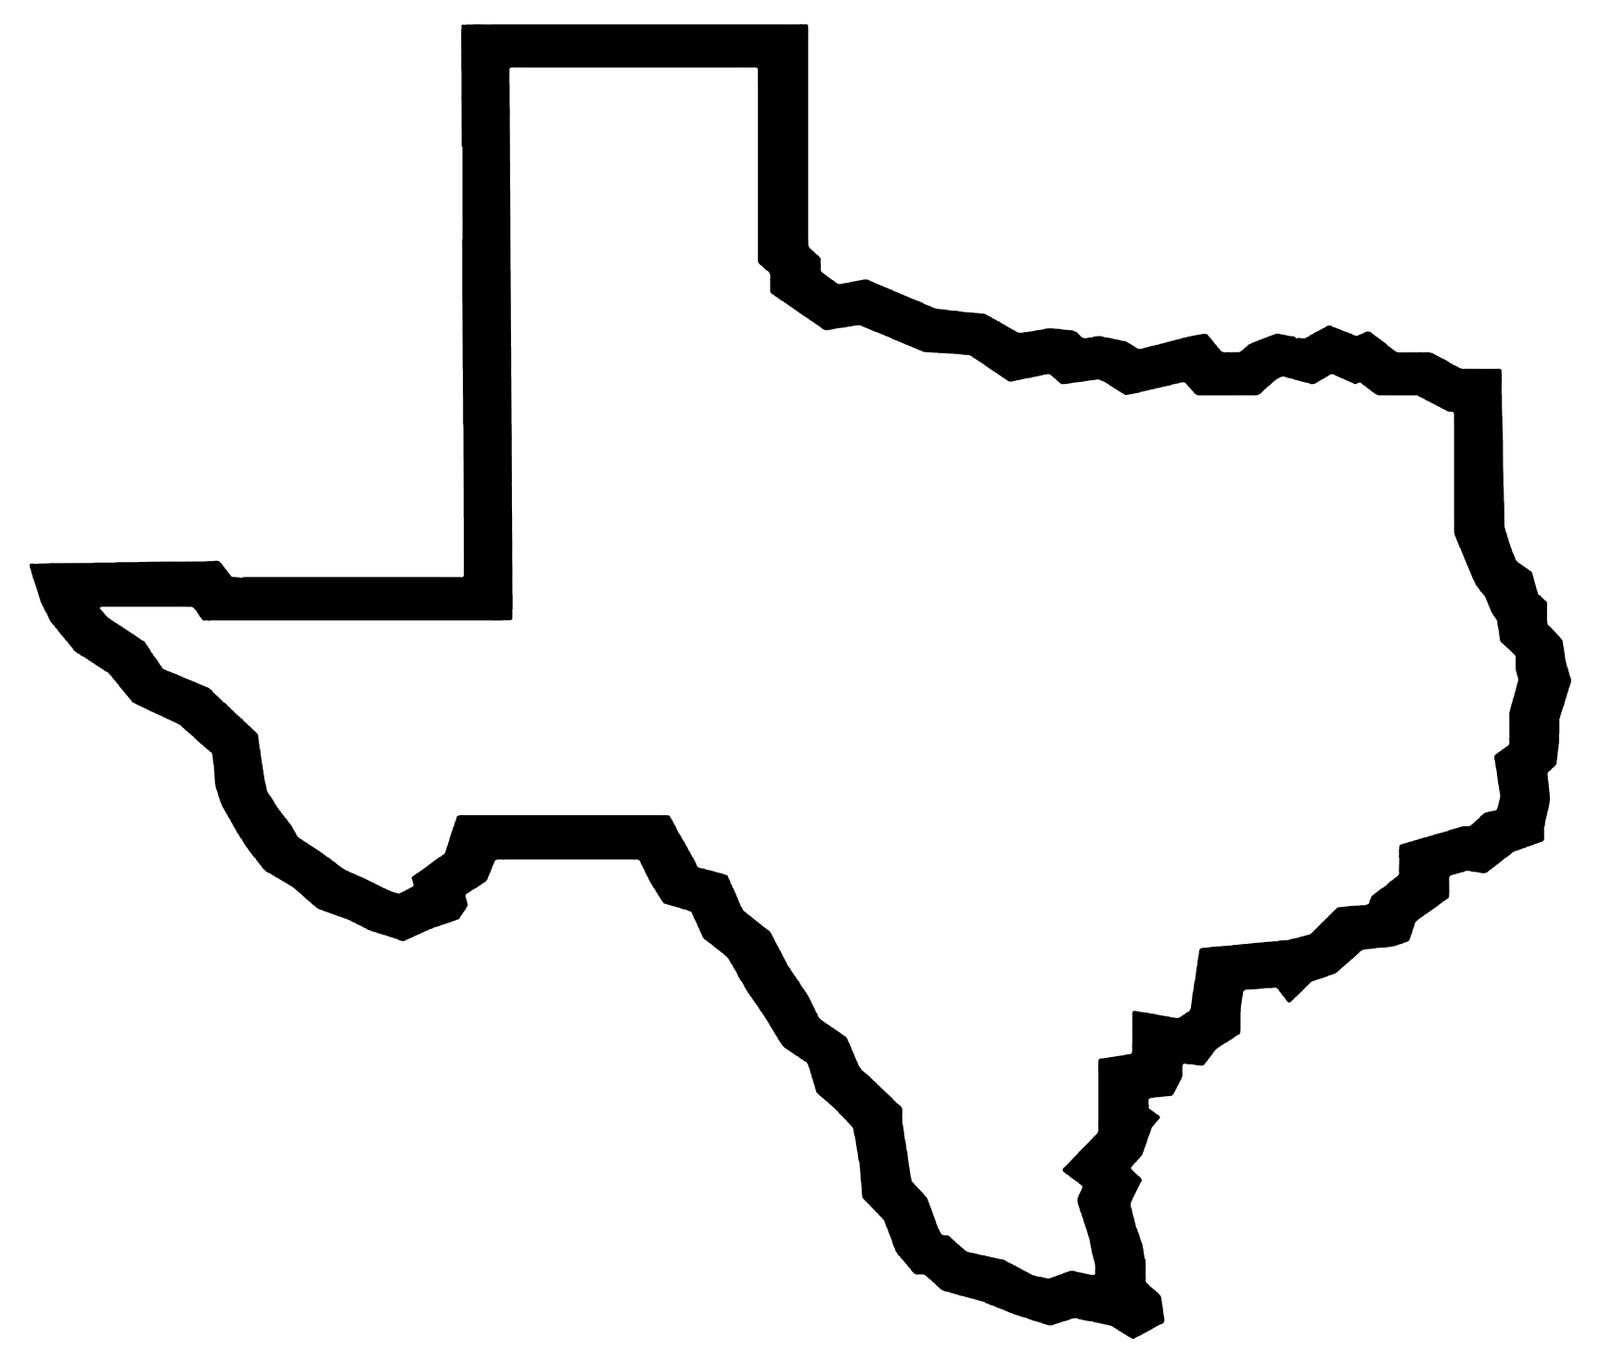 Texas clipart. Outline free images wildcard